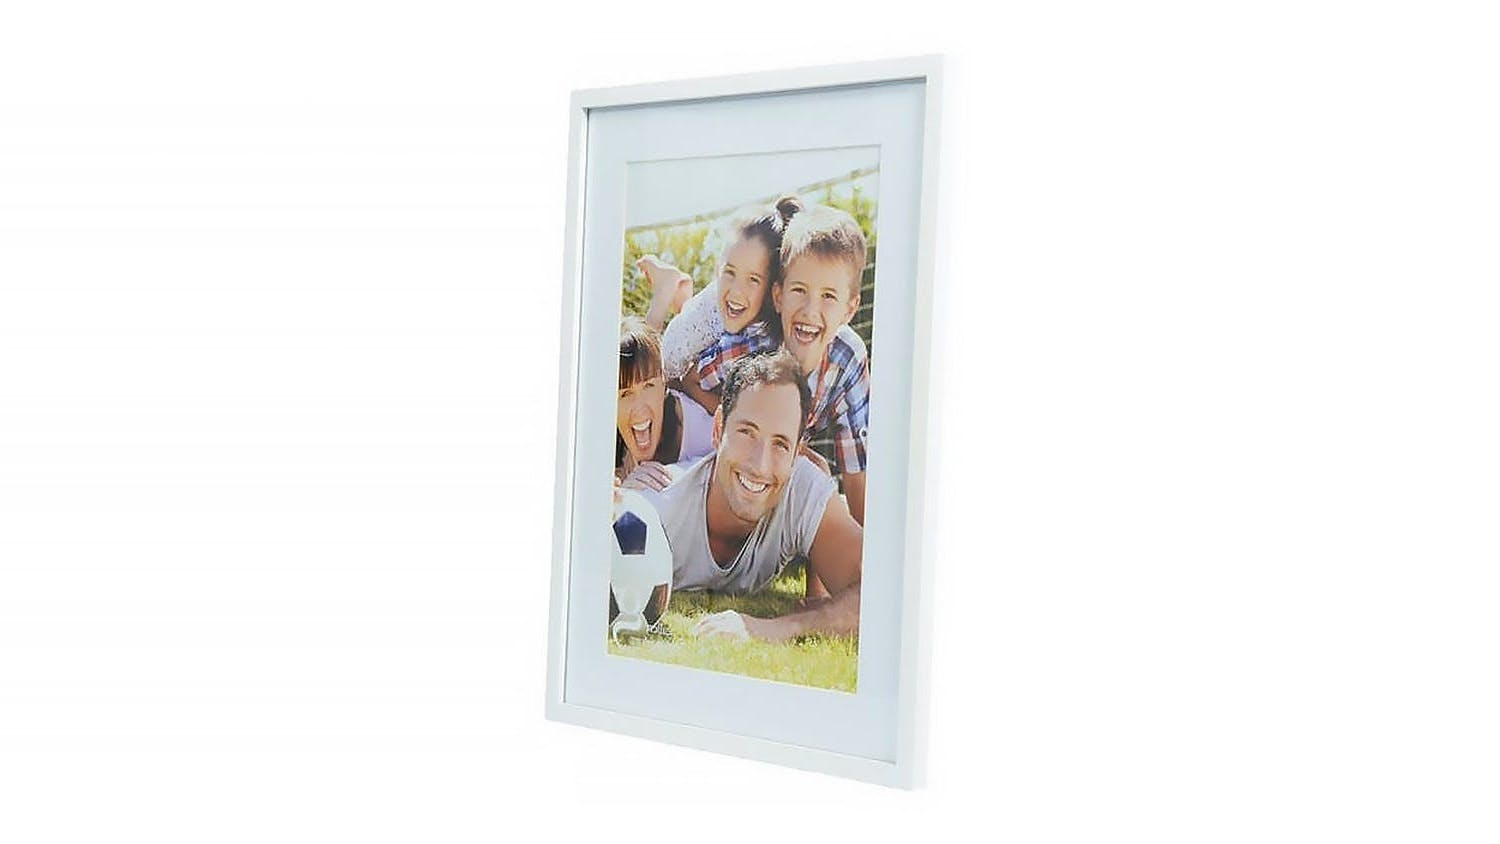 UR1 Gallery 16x22 Photo Frame with 12x18 Opening - White